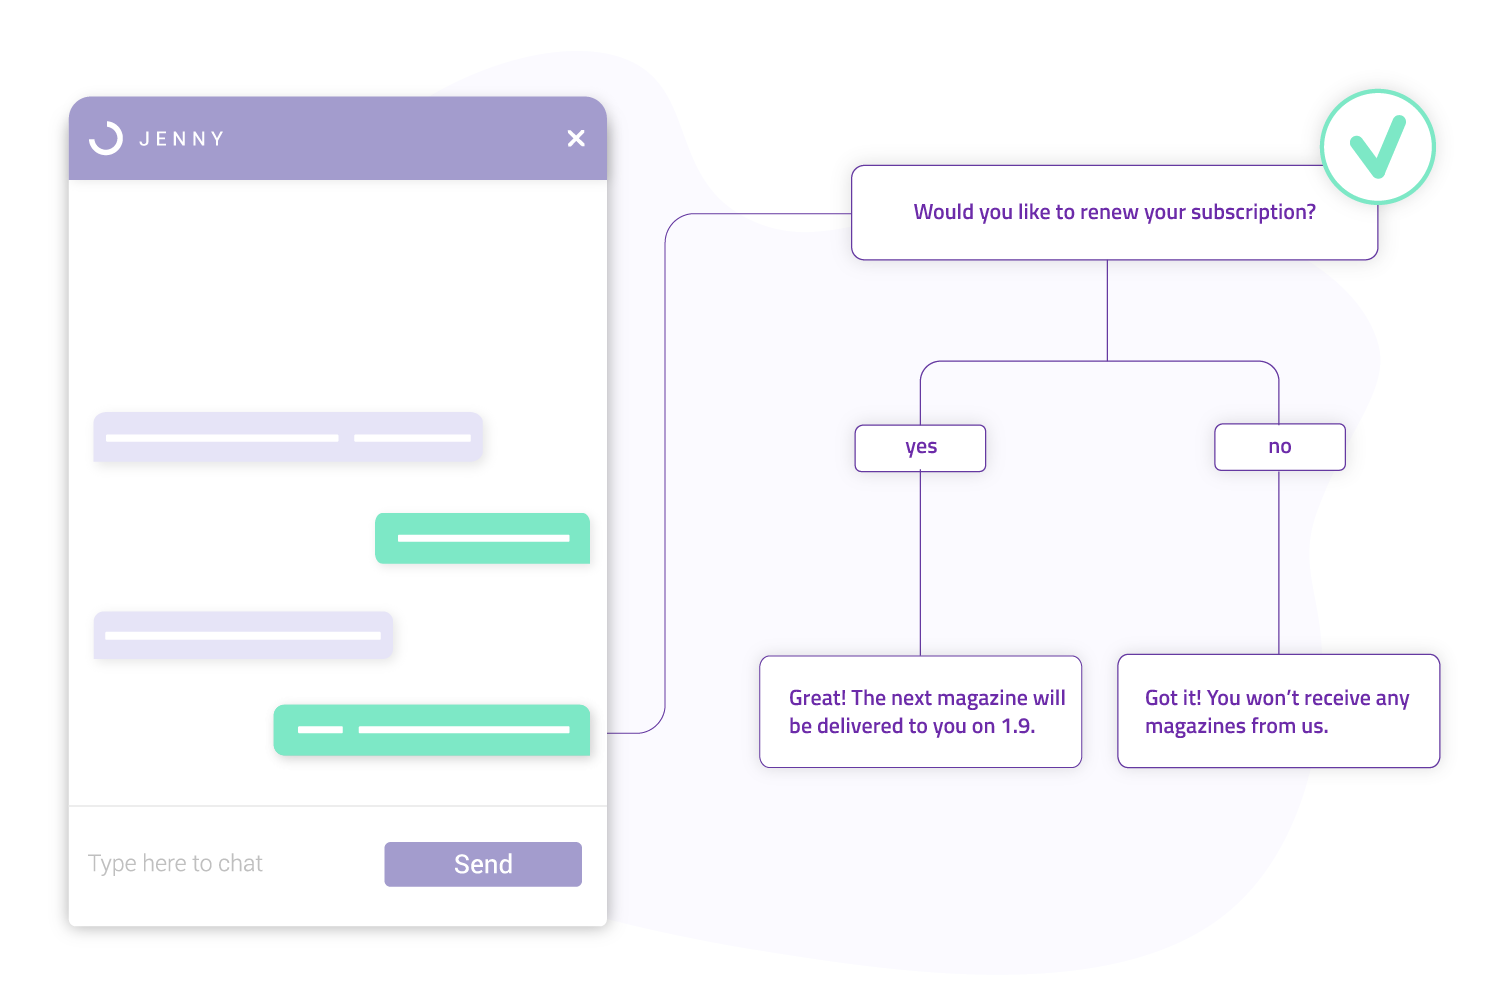 chatbot for entertainment industry - JennyBot